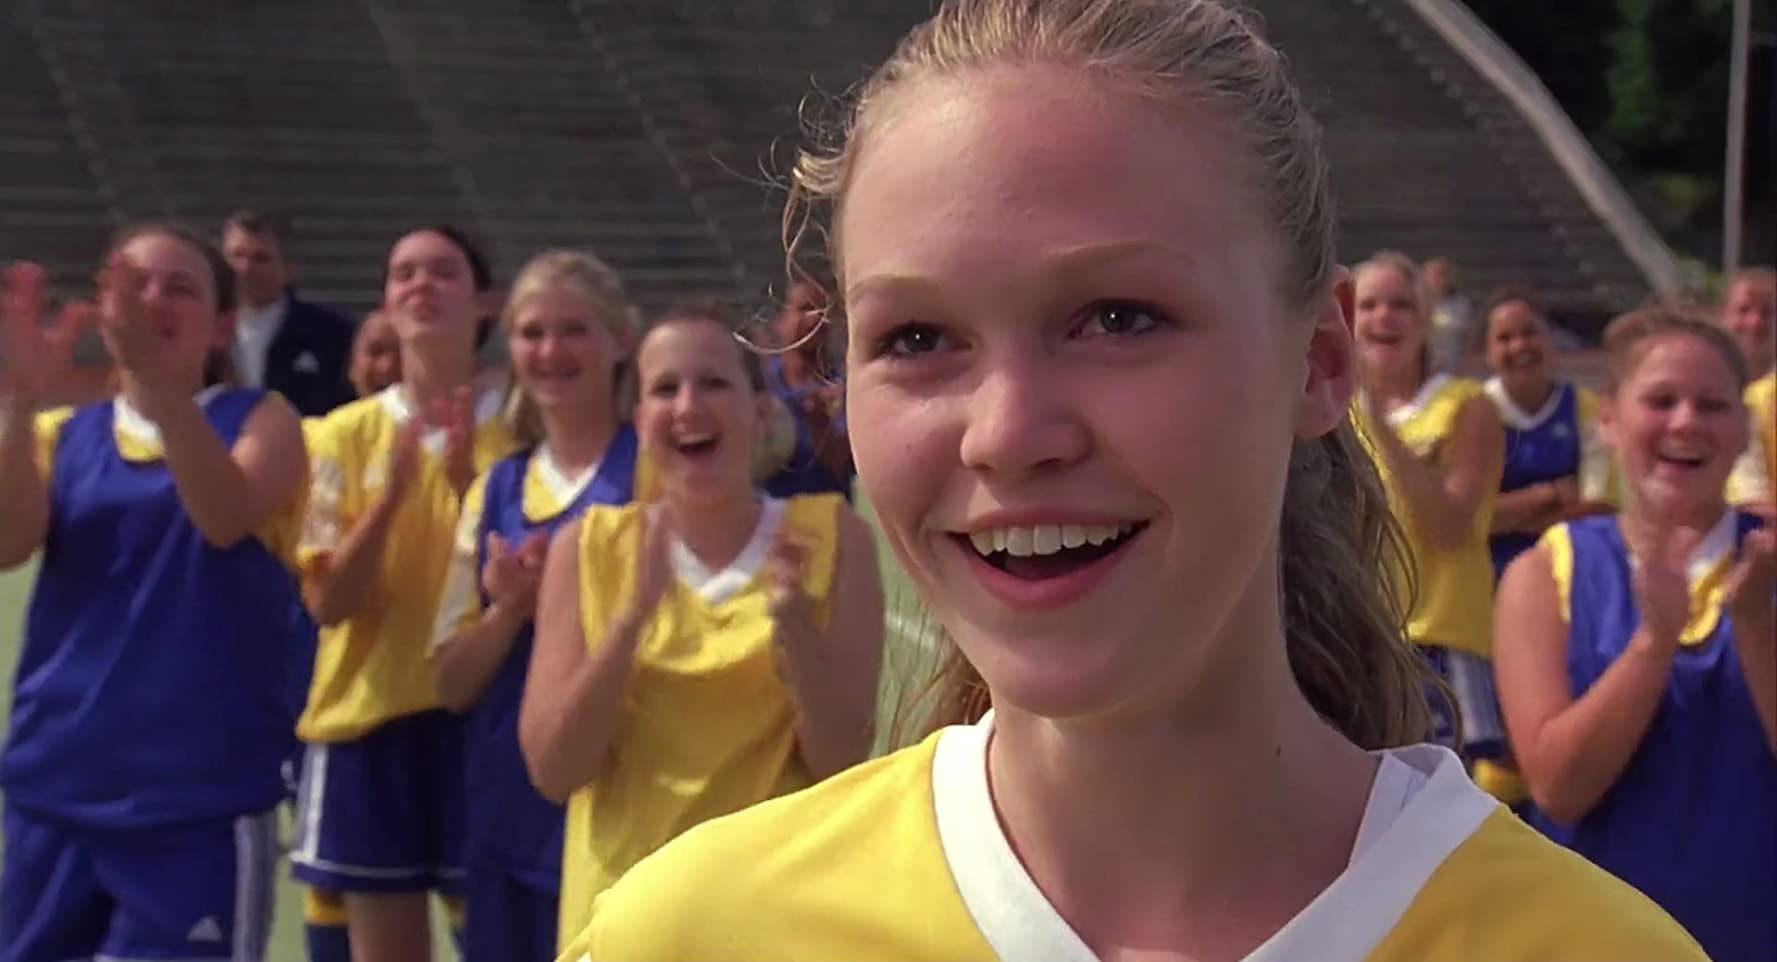 Julia Stiles in 10 Things I Hate About You (1999)